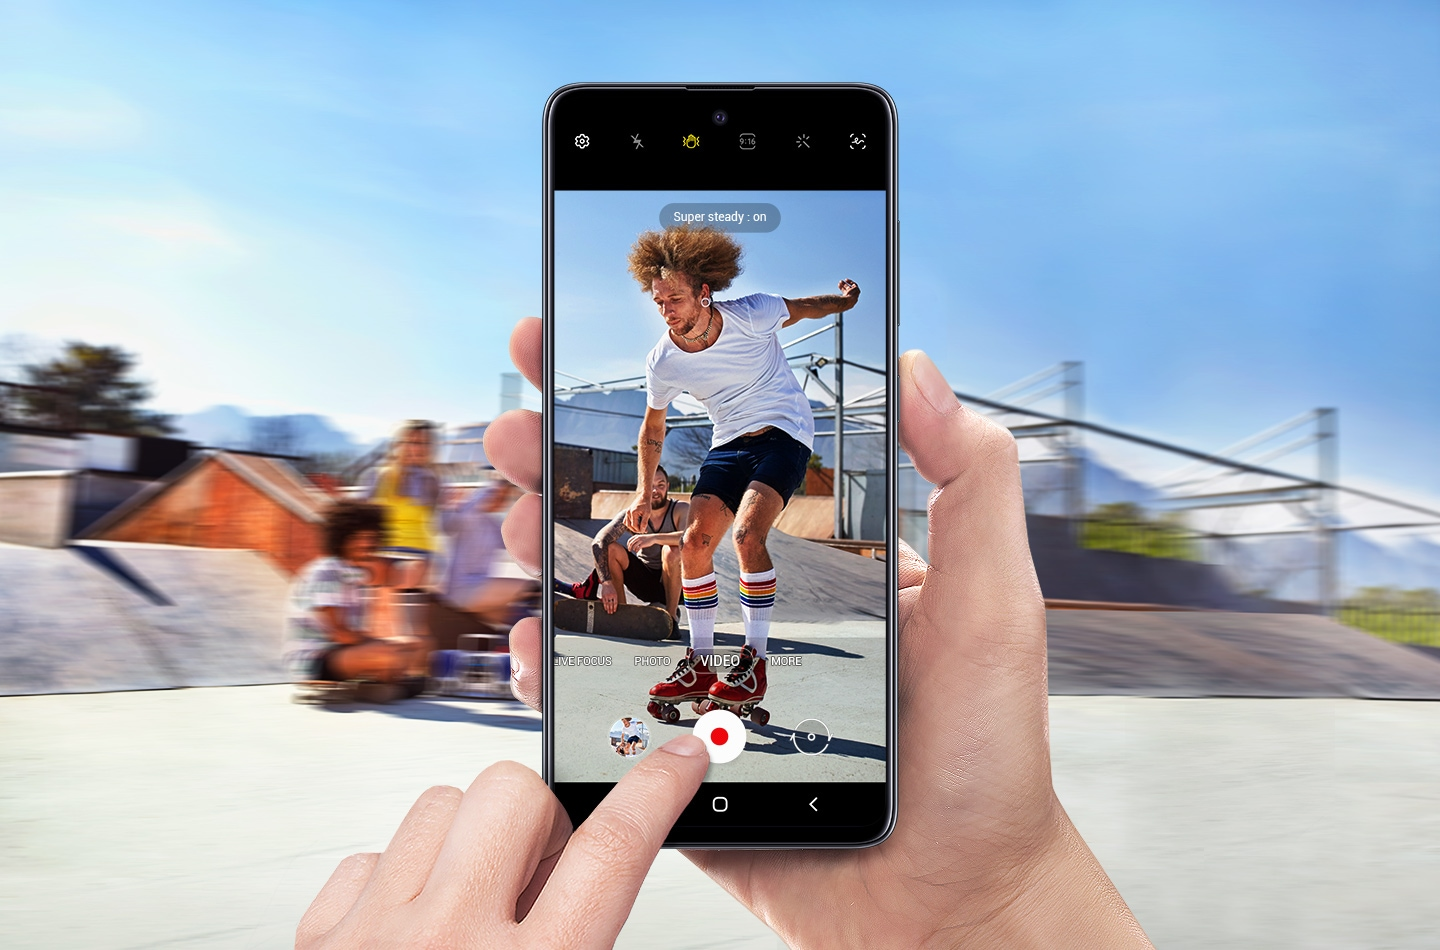 https://images.samsung.com/is/image/samsung/rs-feature-shoots-smooth-and-steady-just-like-the-pros-201381955?$FB_TYPE_A_JPG$